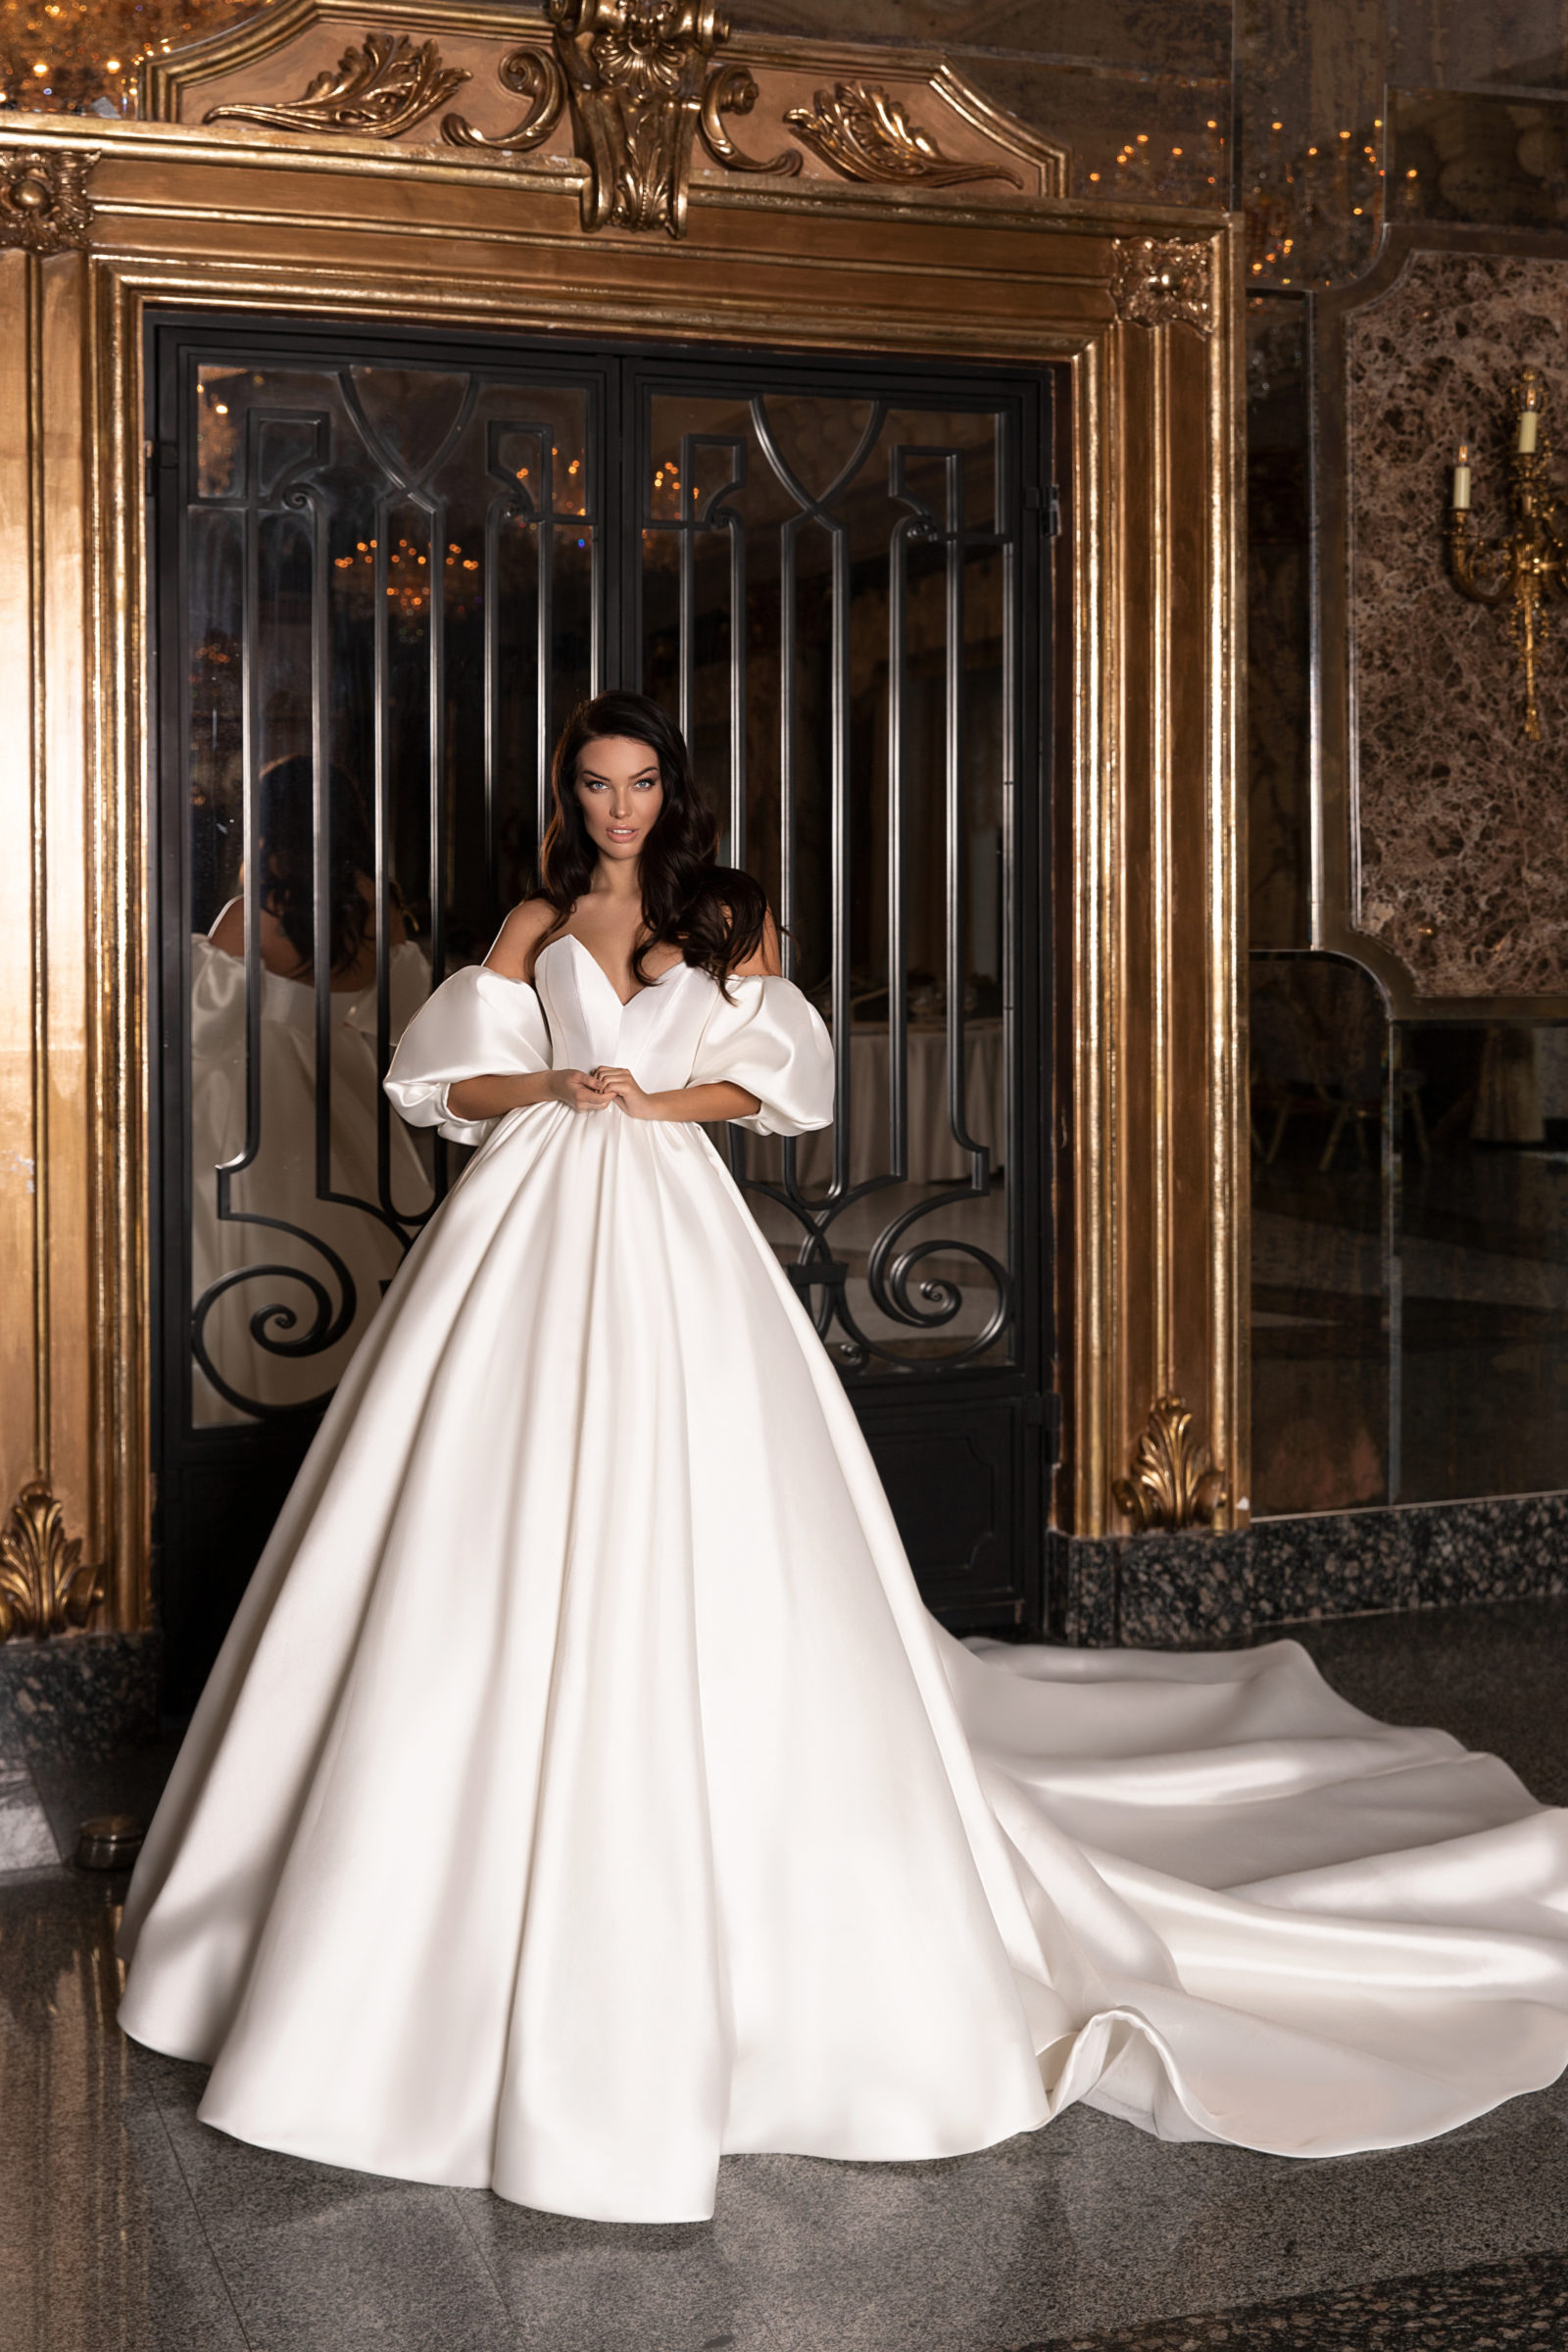 Dramatic long train ballgown with large off-the-shoulder sleeves